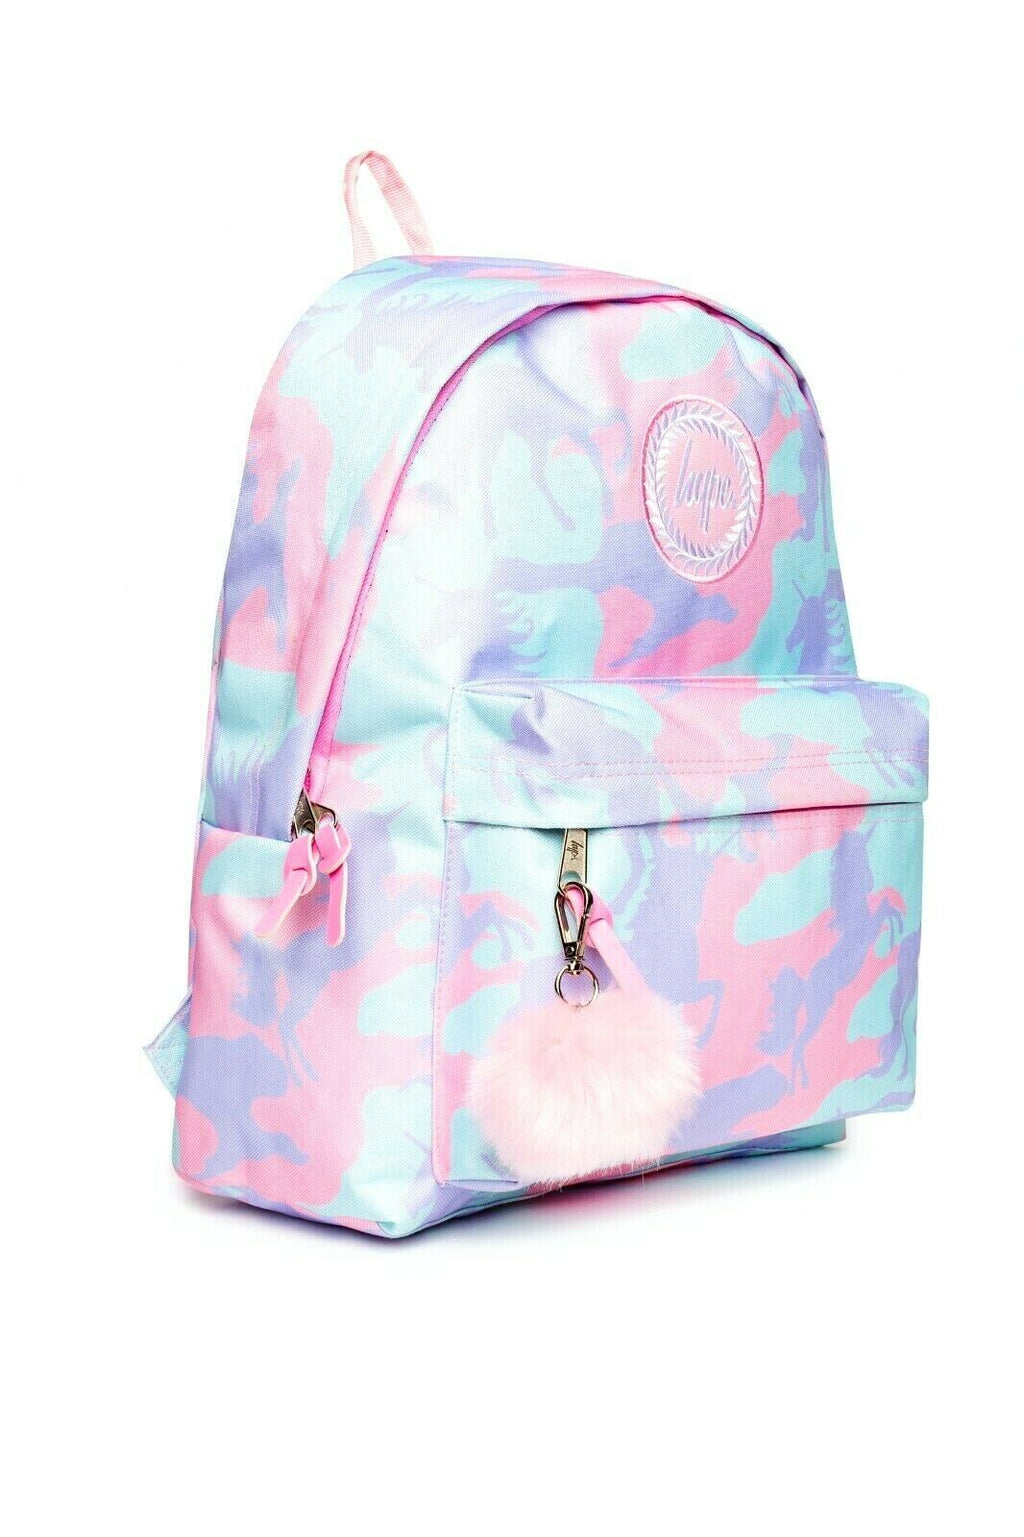 Unicamo Backpack - Pink